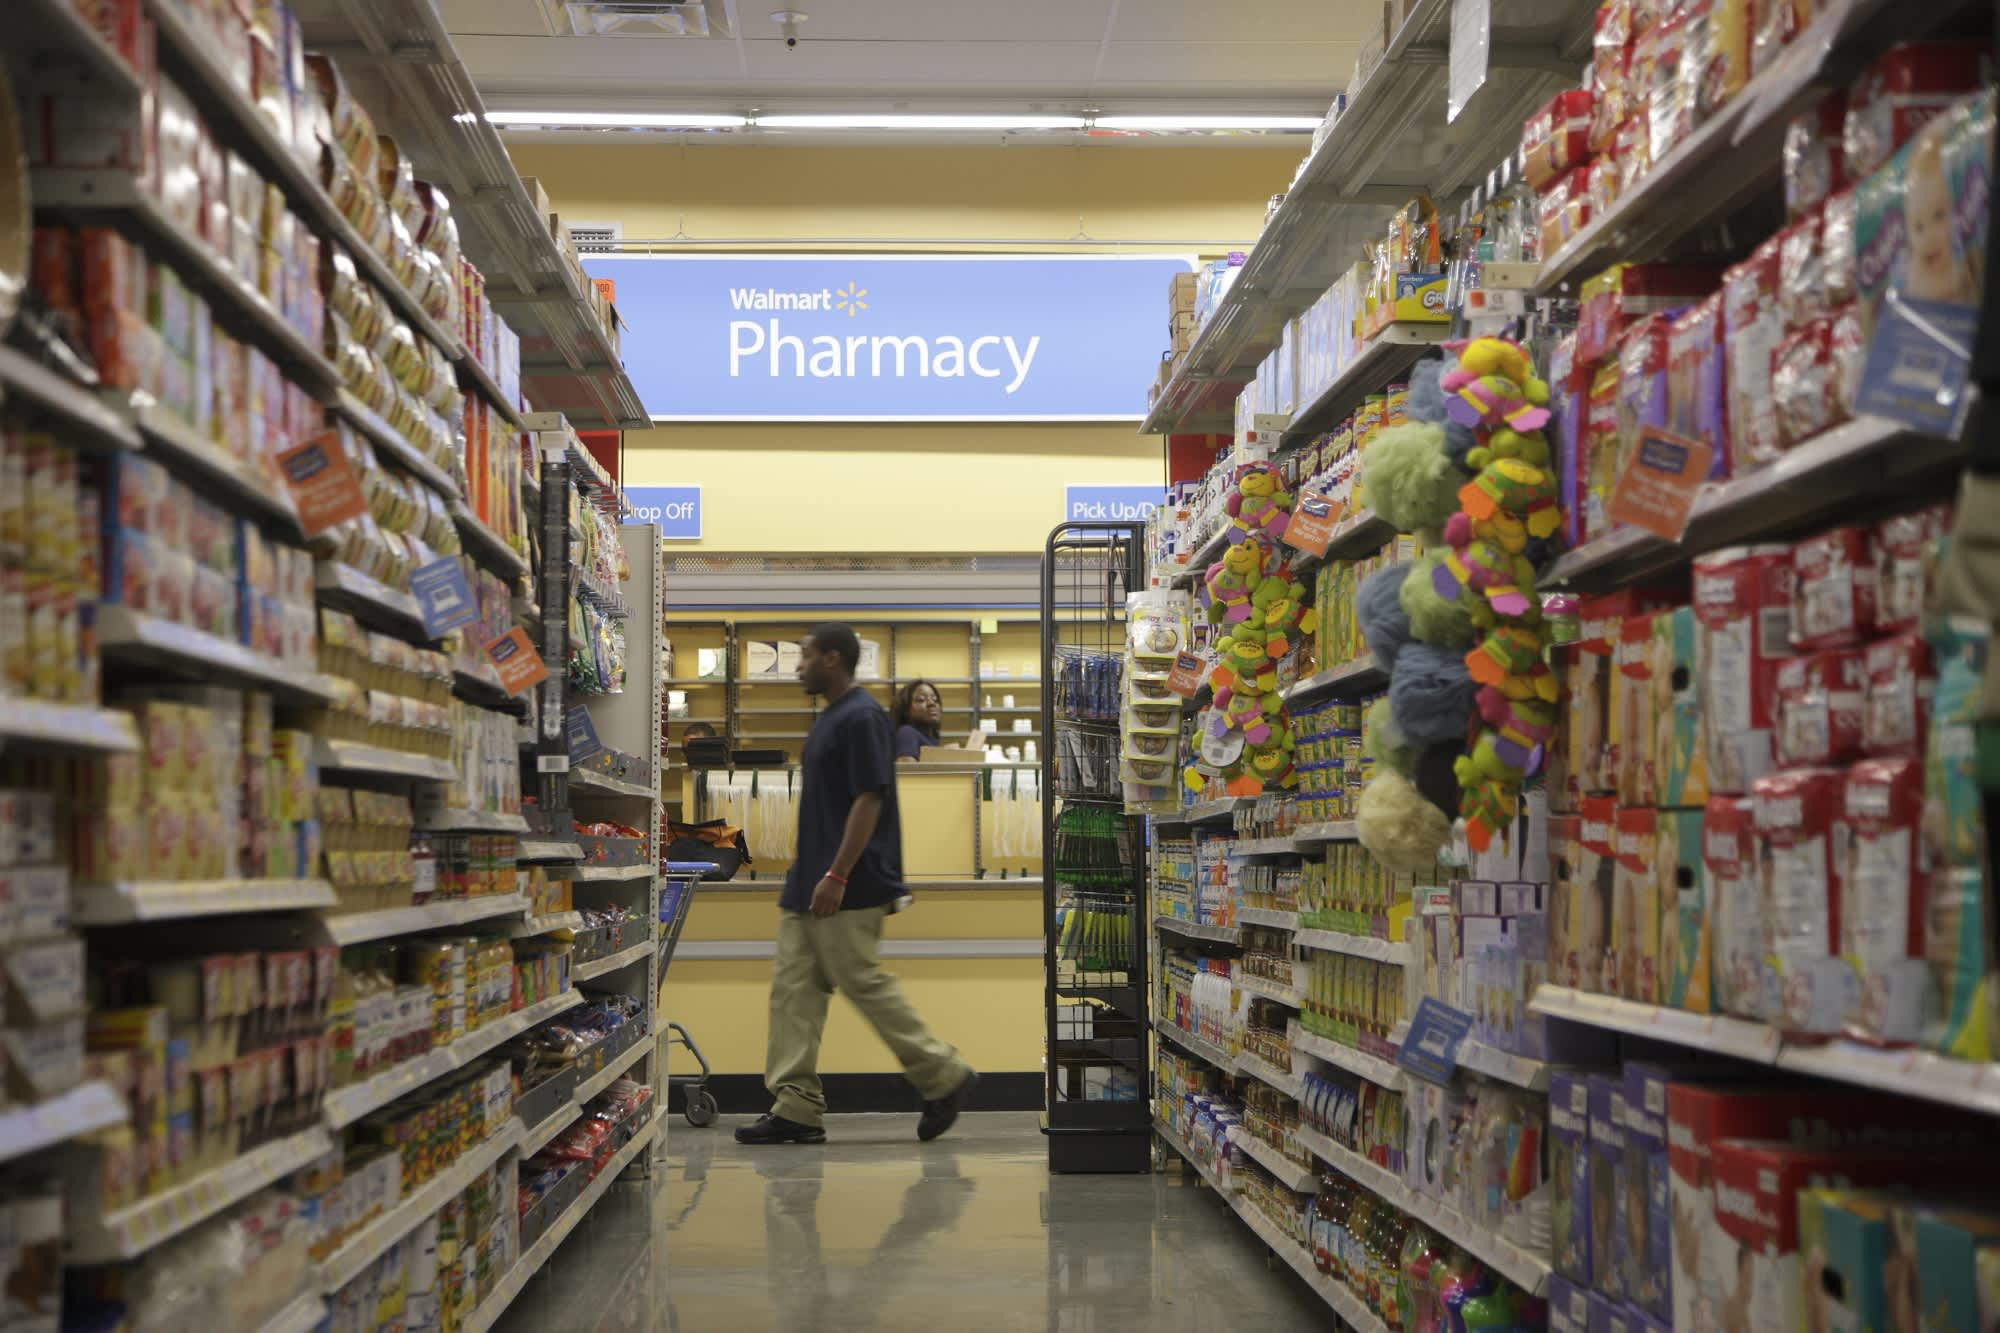 Walmart's shares up as coronavirus rattles Wall Street